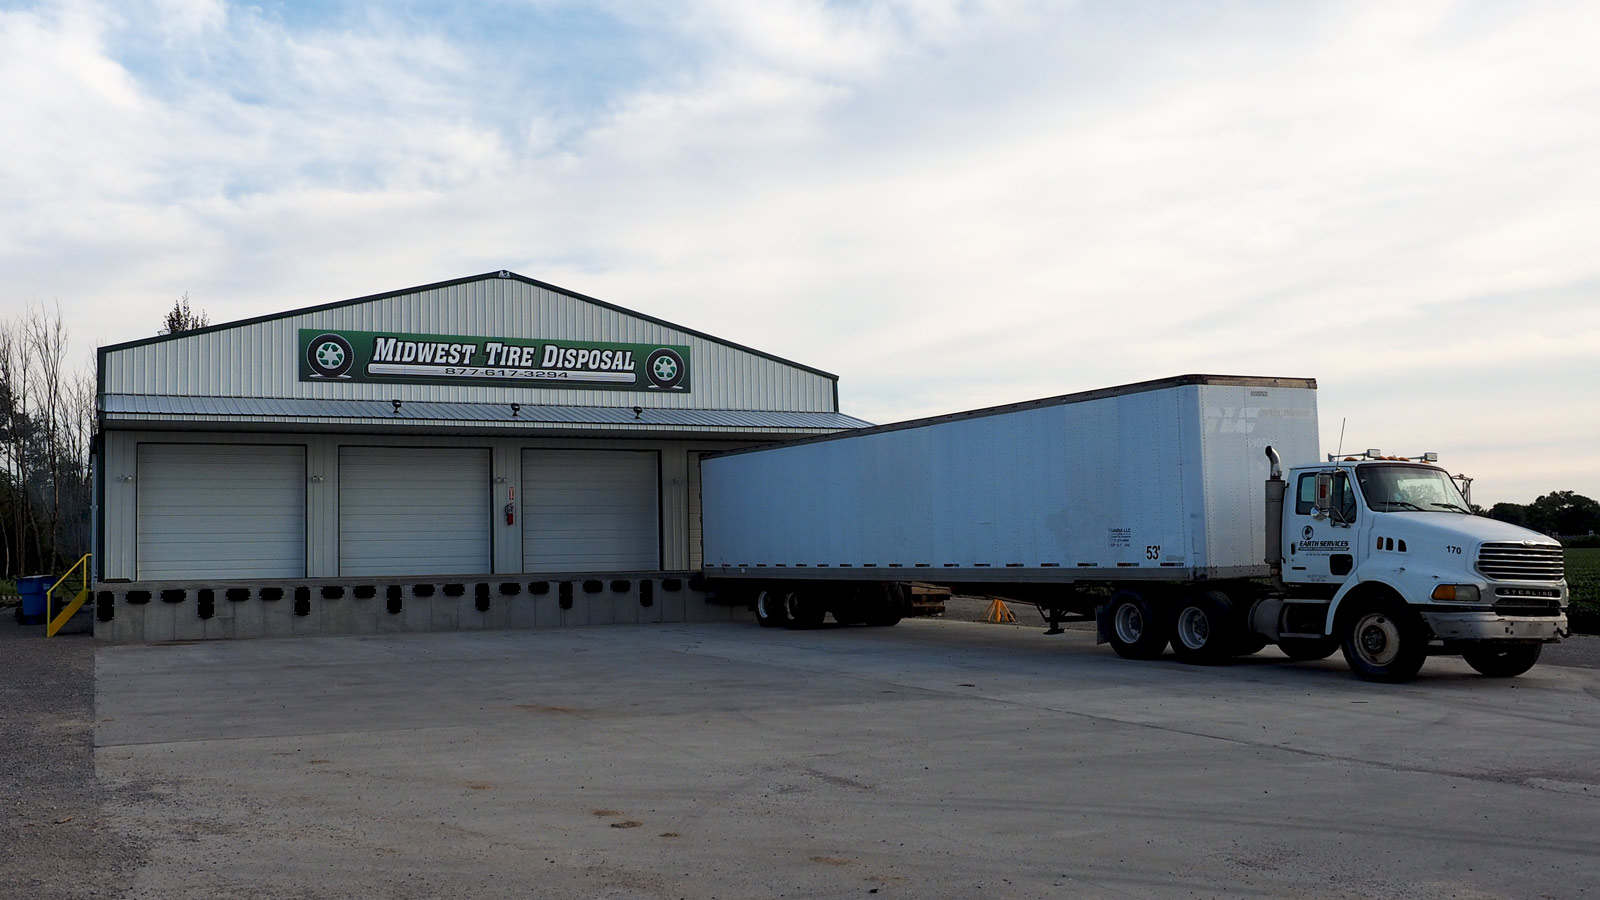 Waste Tire Removal & Recycling - Midwest Tire Disposal